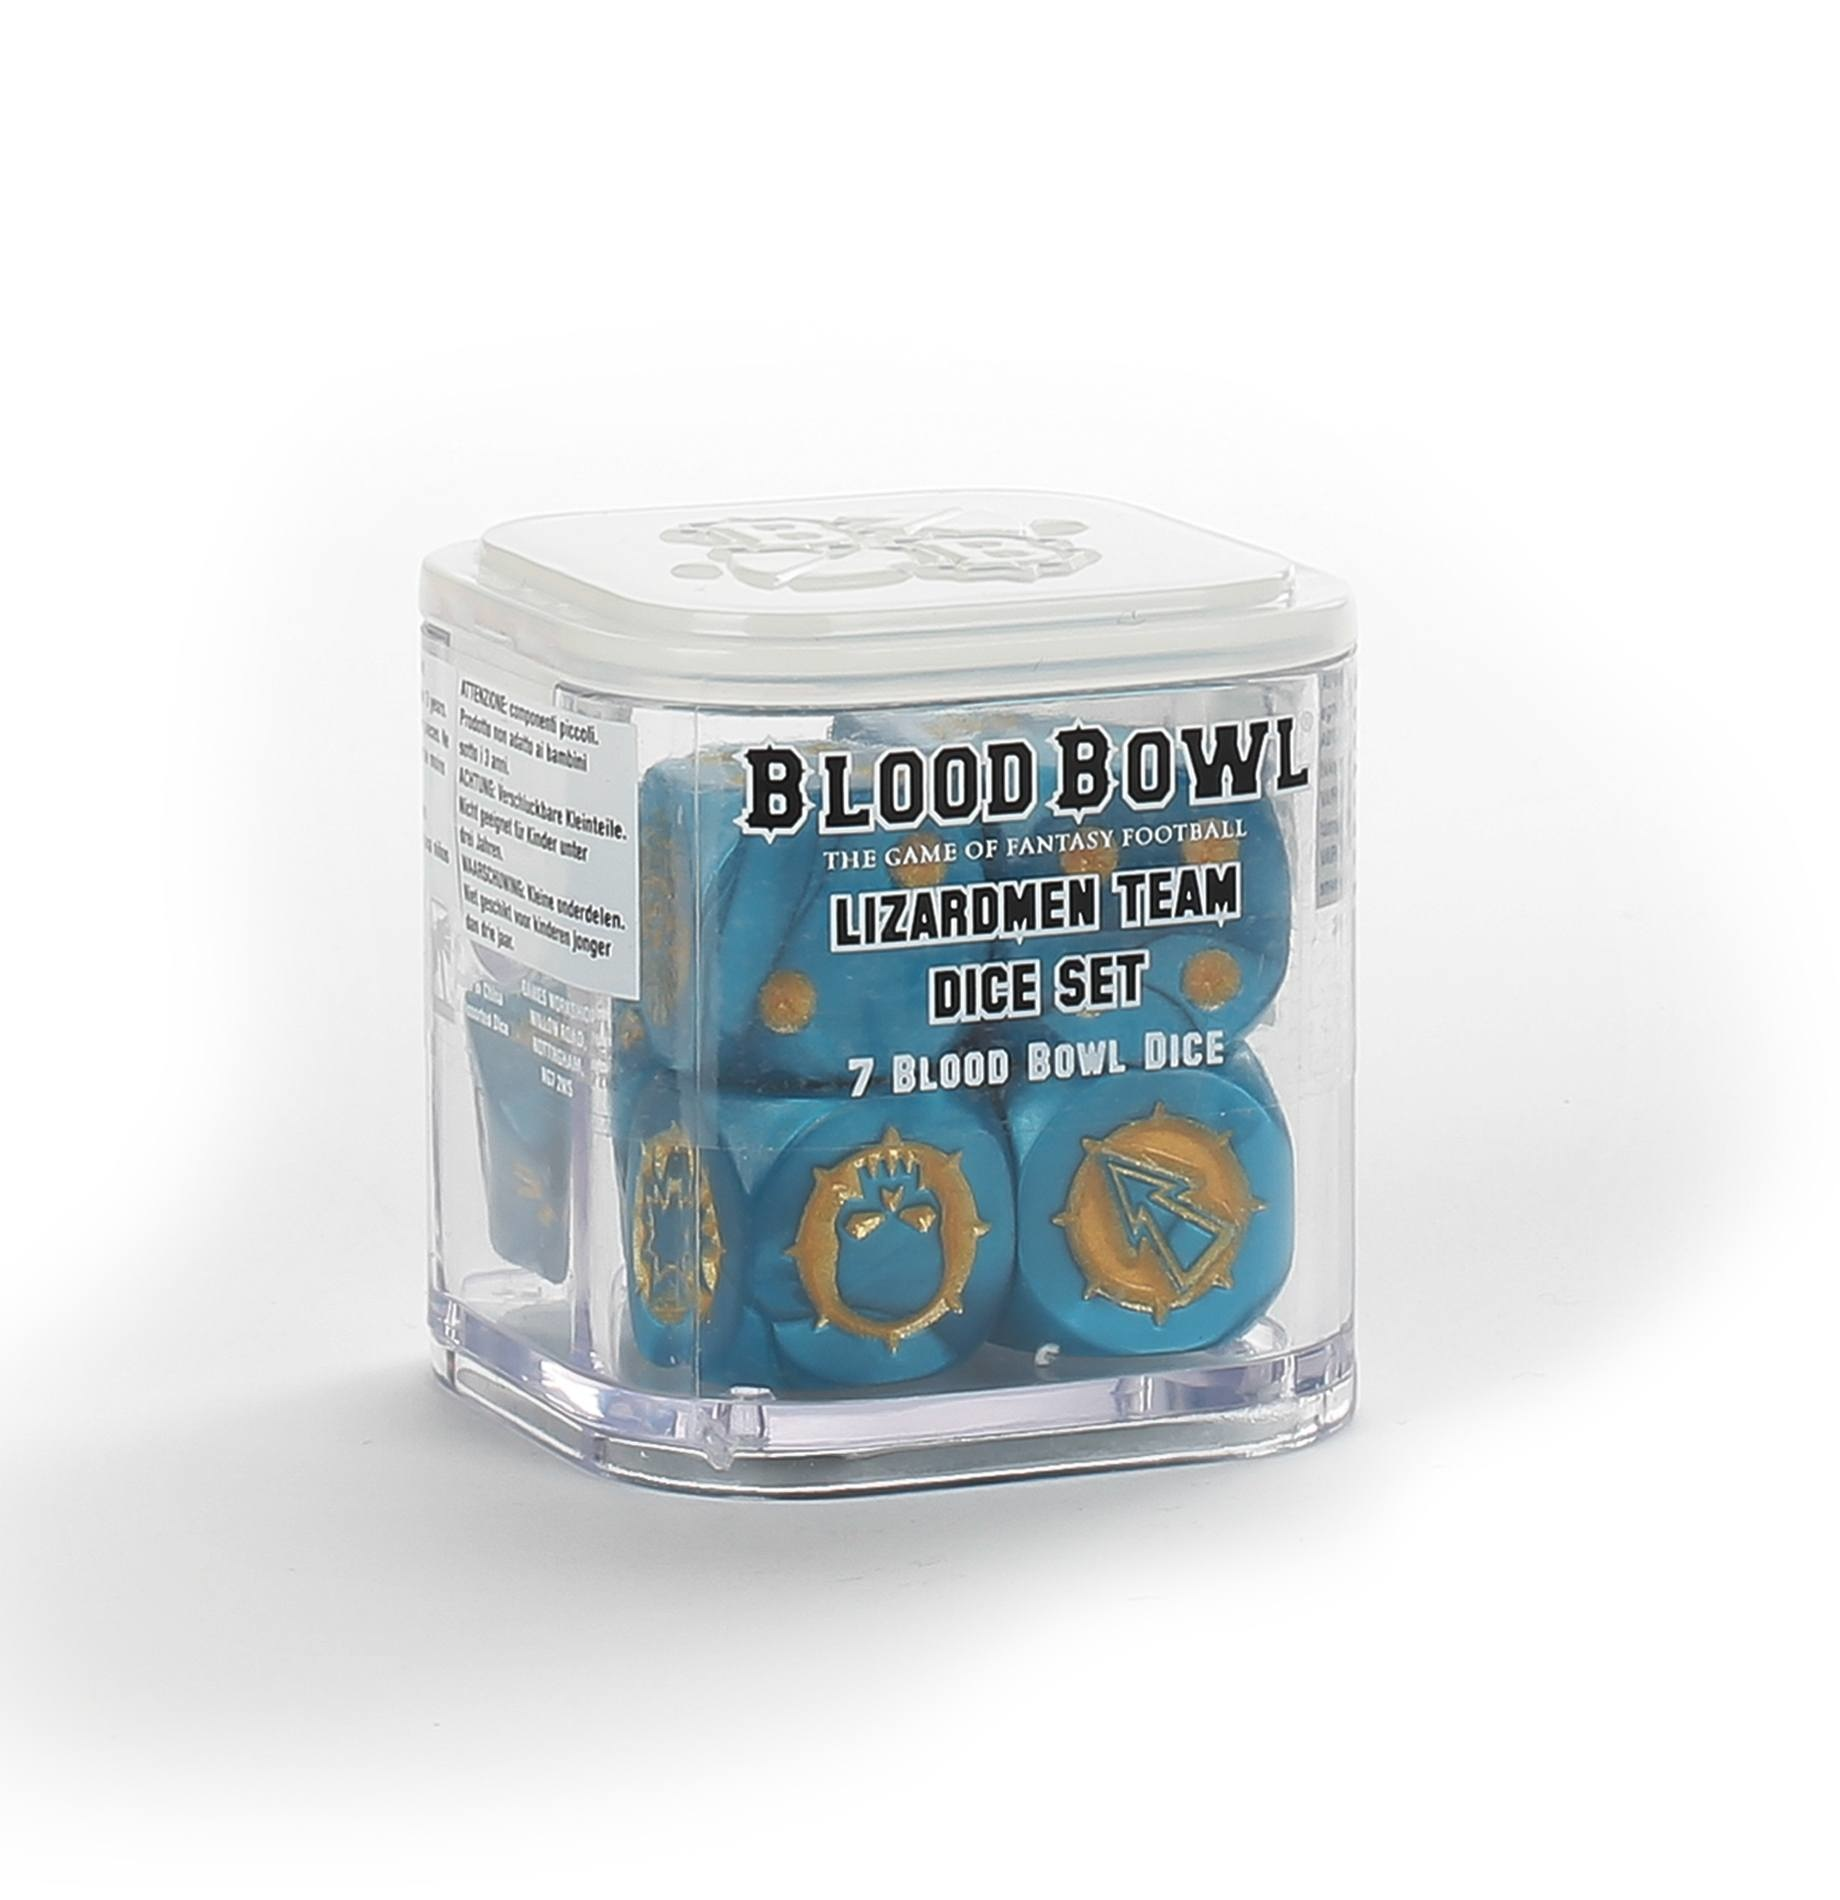 Blood Bowl Dice Boardgames Ca Revolutionary carrying cases and custom cut foam trays for miniature toys. blood bowl dice boardgames ca